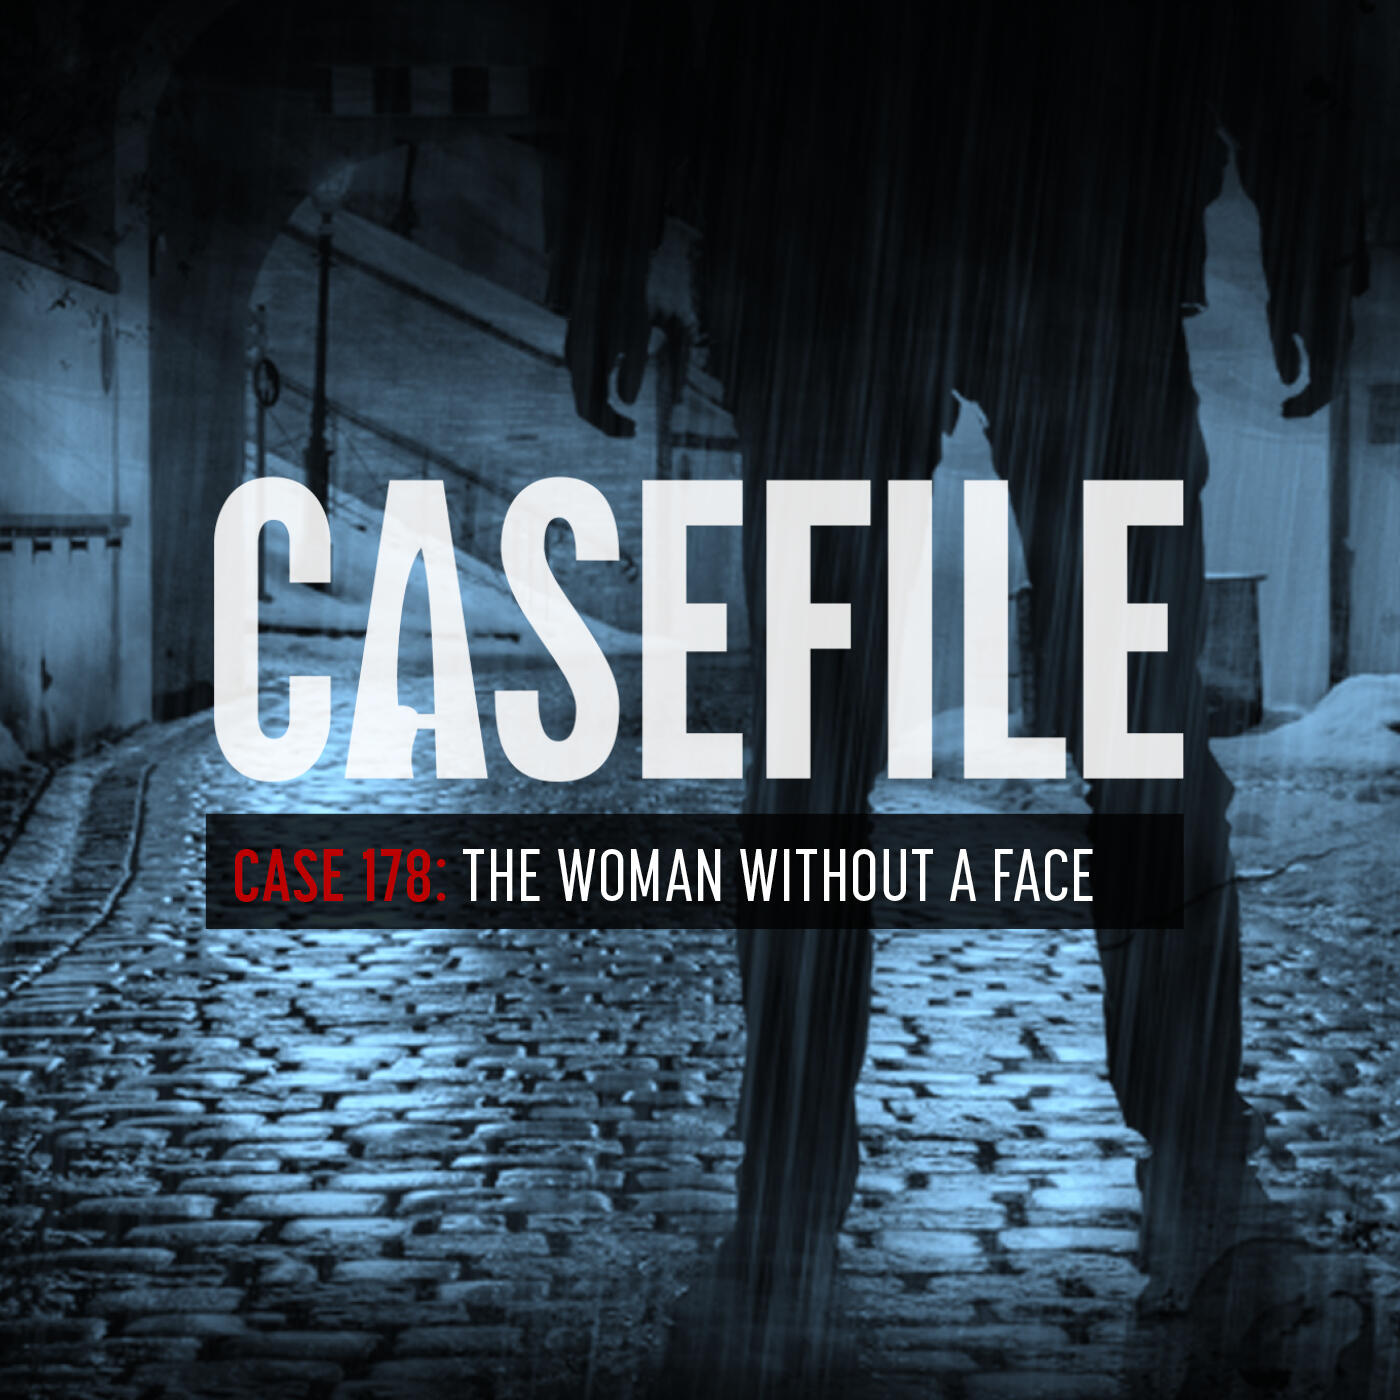 Case 178: The Woman Without a Face